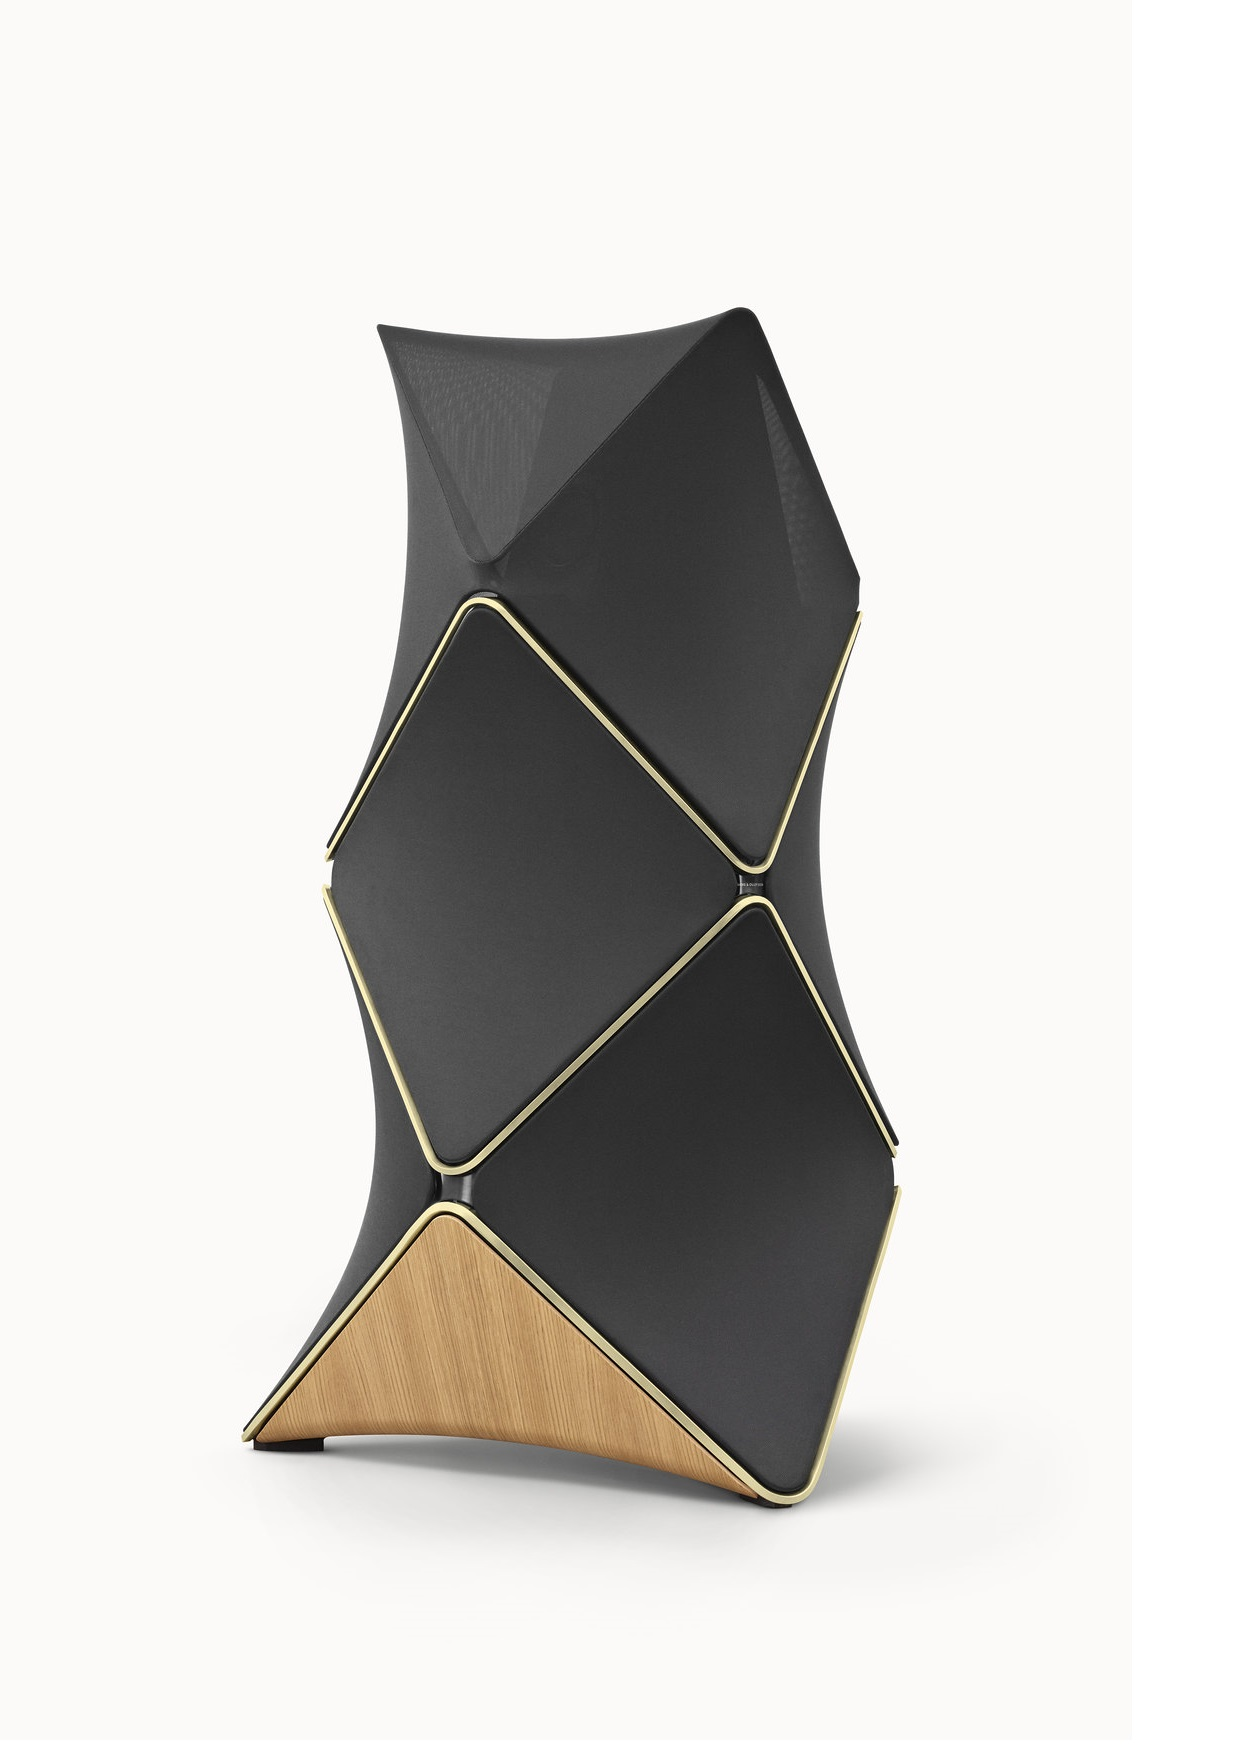 A Bang & Olufsen speakers Melbourne